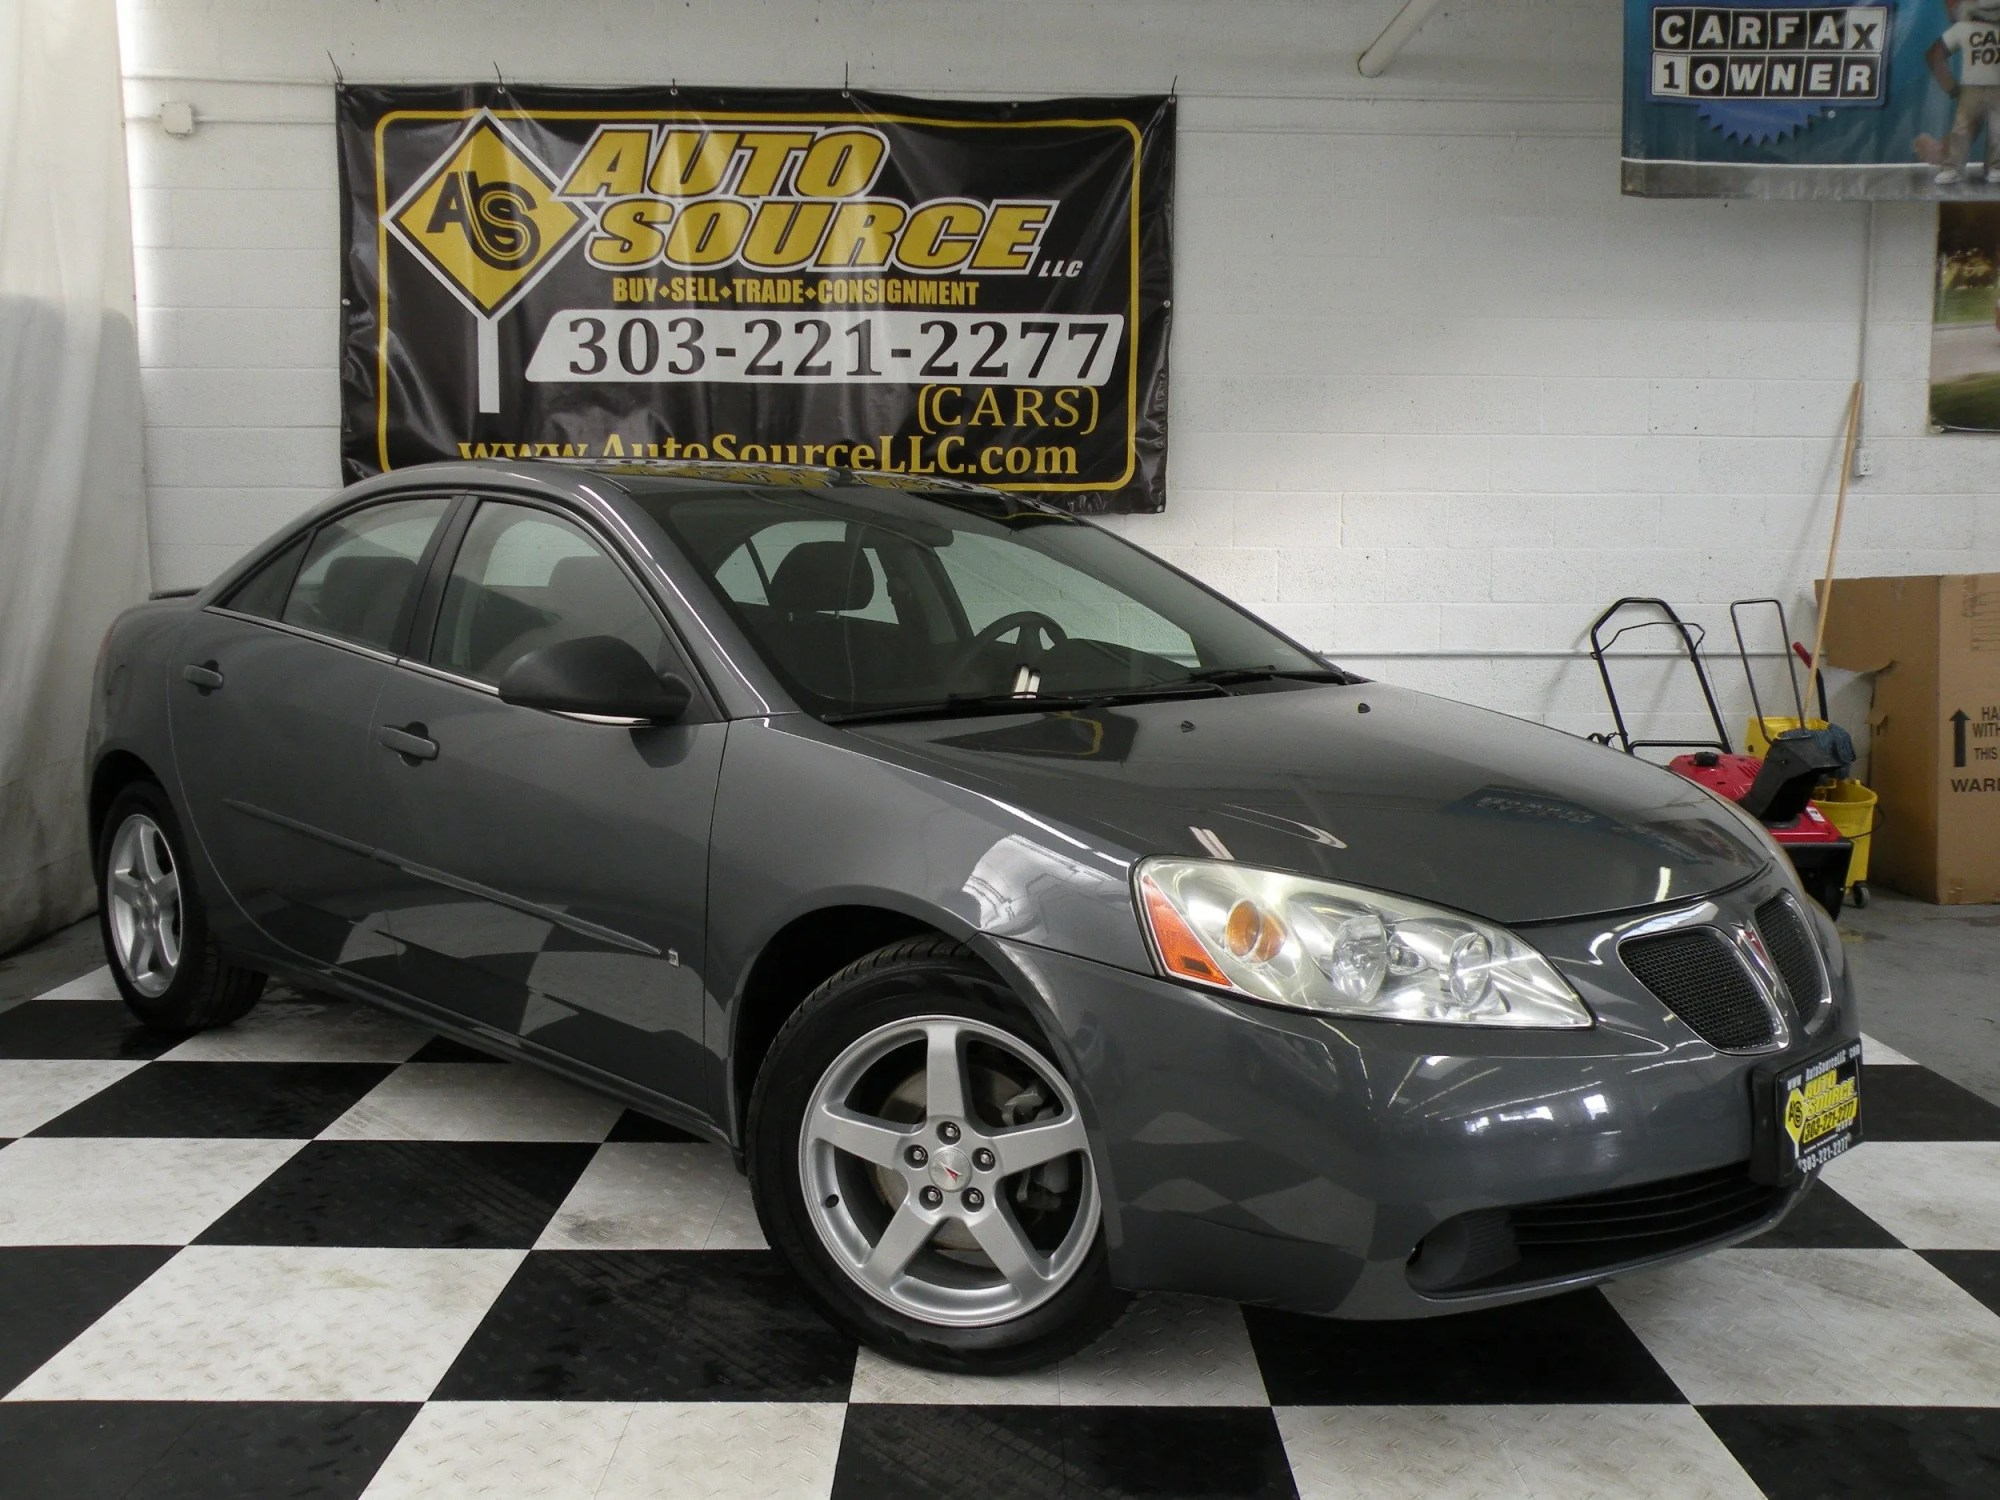 medium resolution of 2007 pontiac g6 ultra clean 1 owner car with warranty included